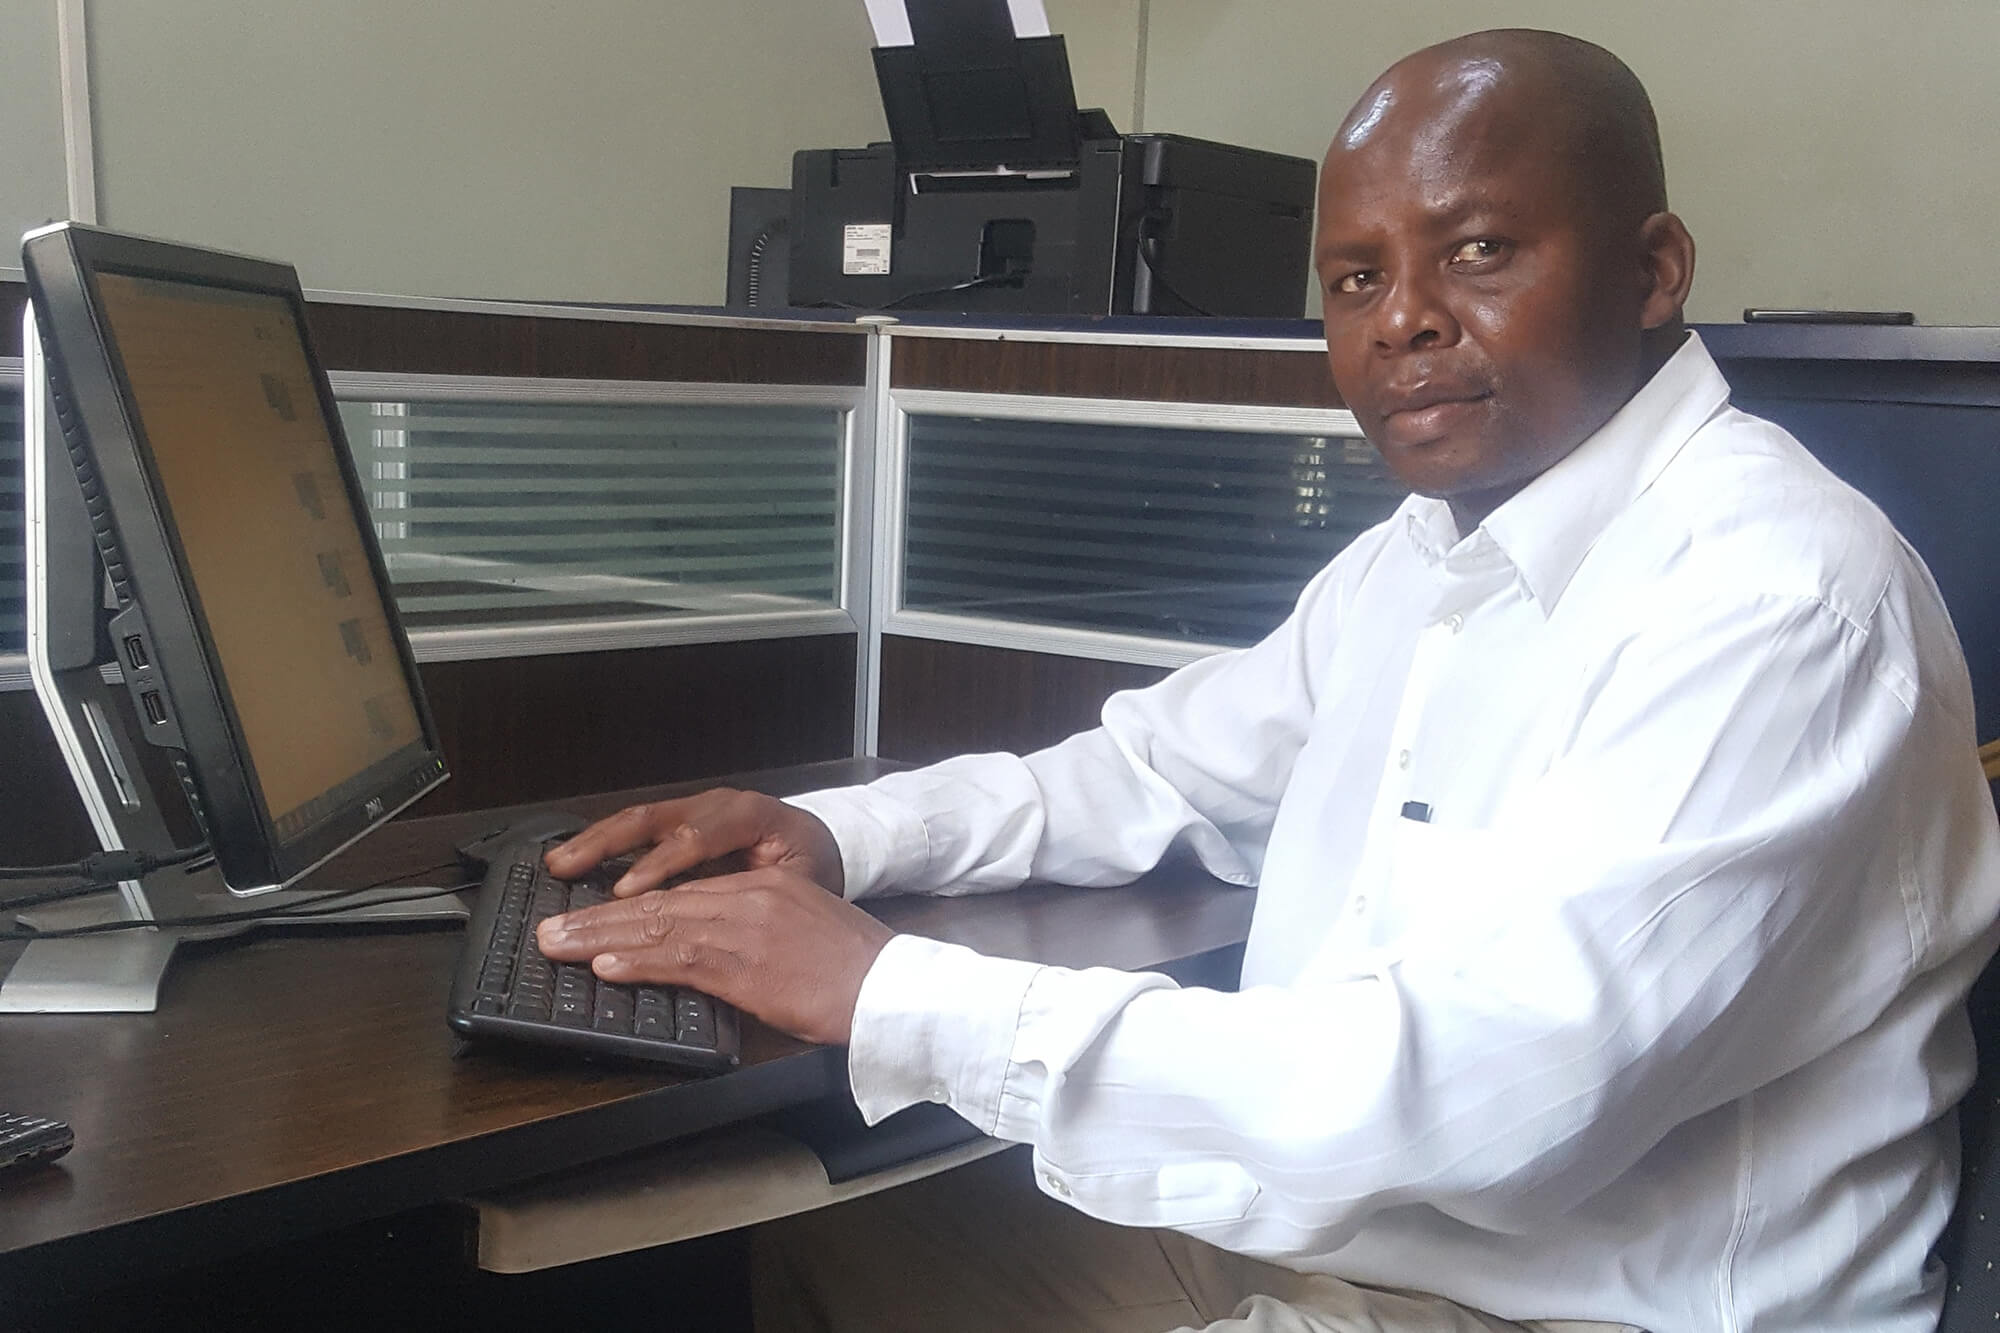 Online student Gilson Timire sat studying